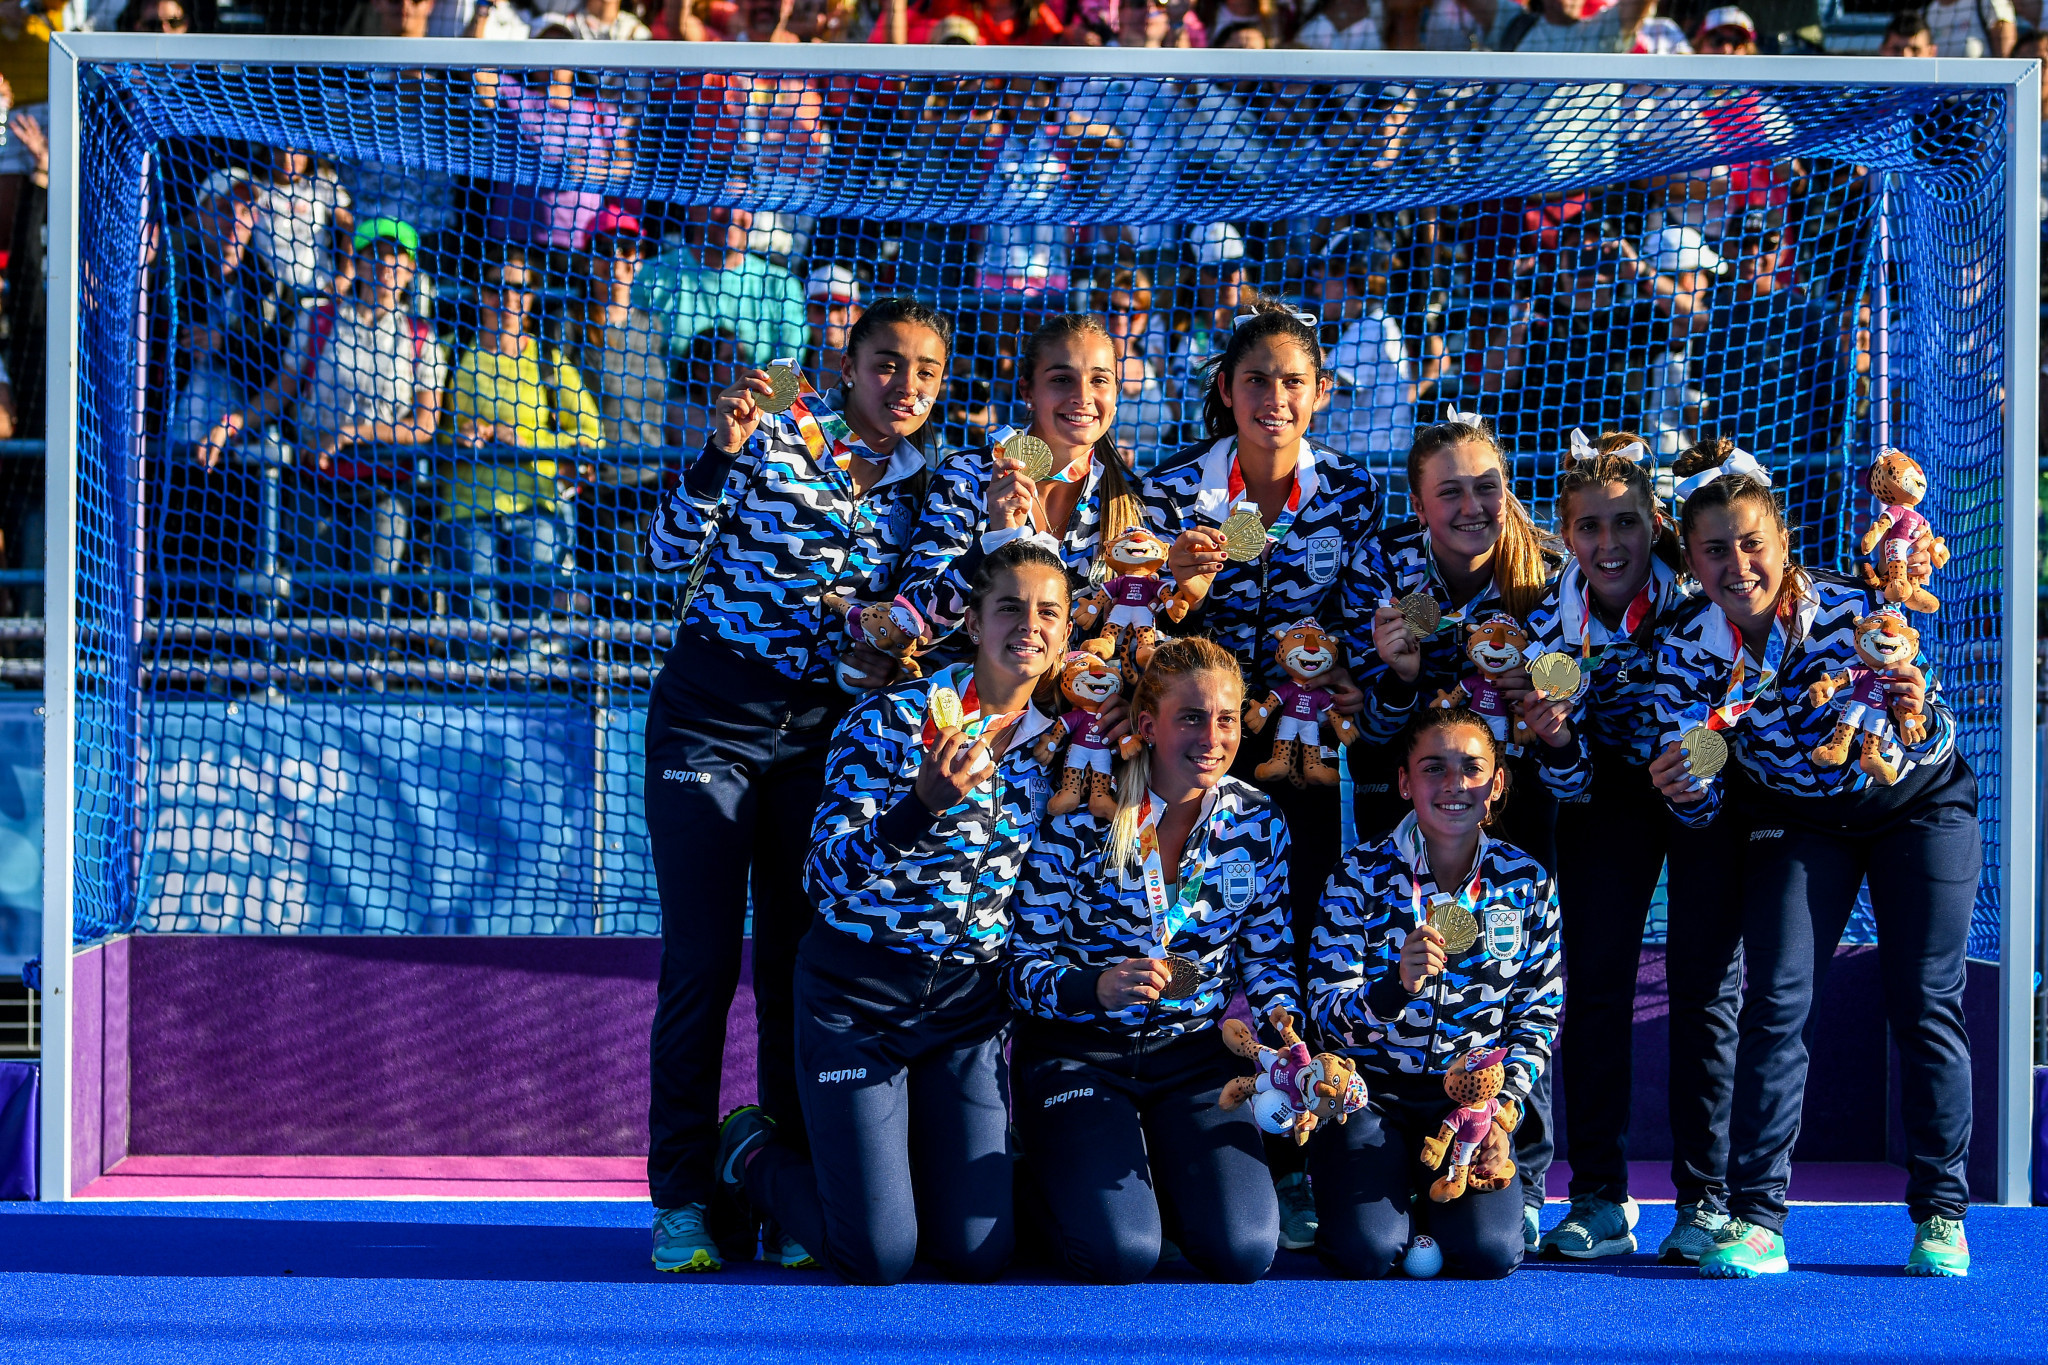 Argentina win women's hockey title as first athletics gold medals awarded at Buenos Aires 2018